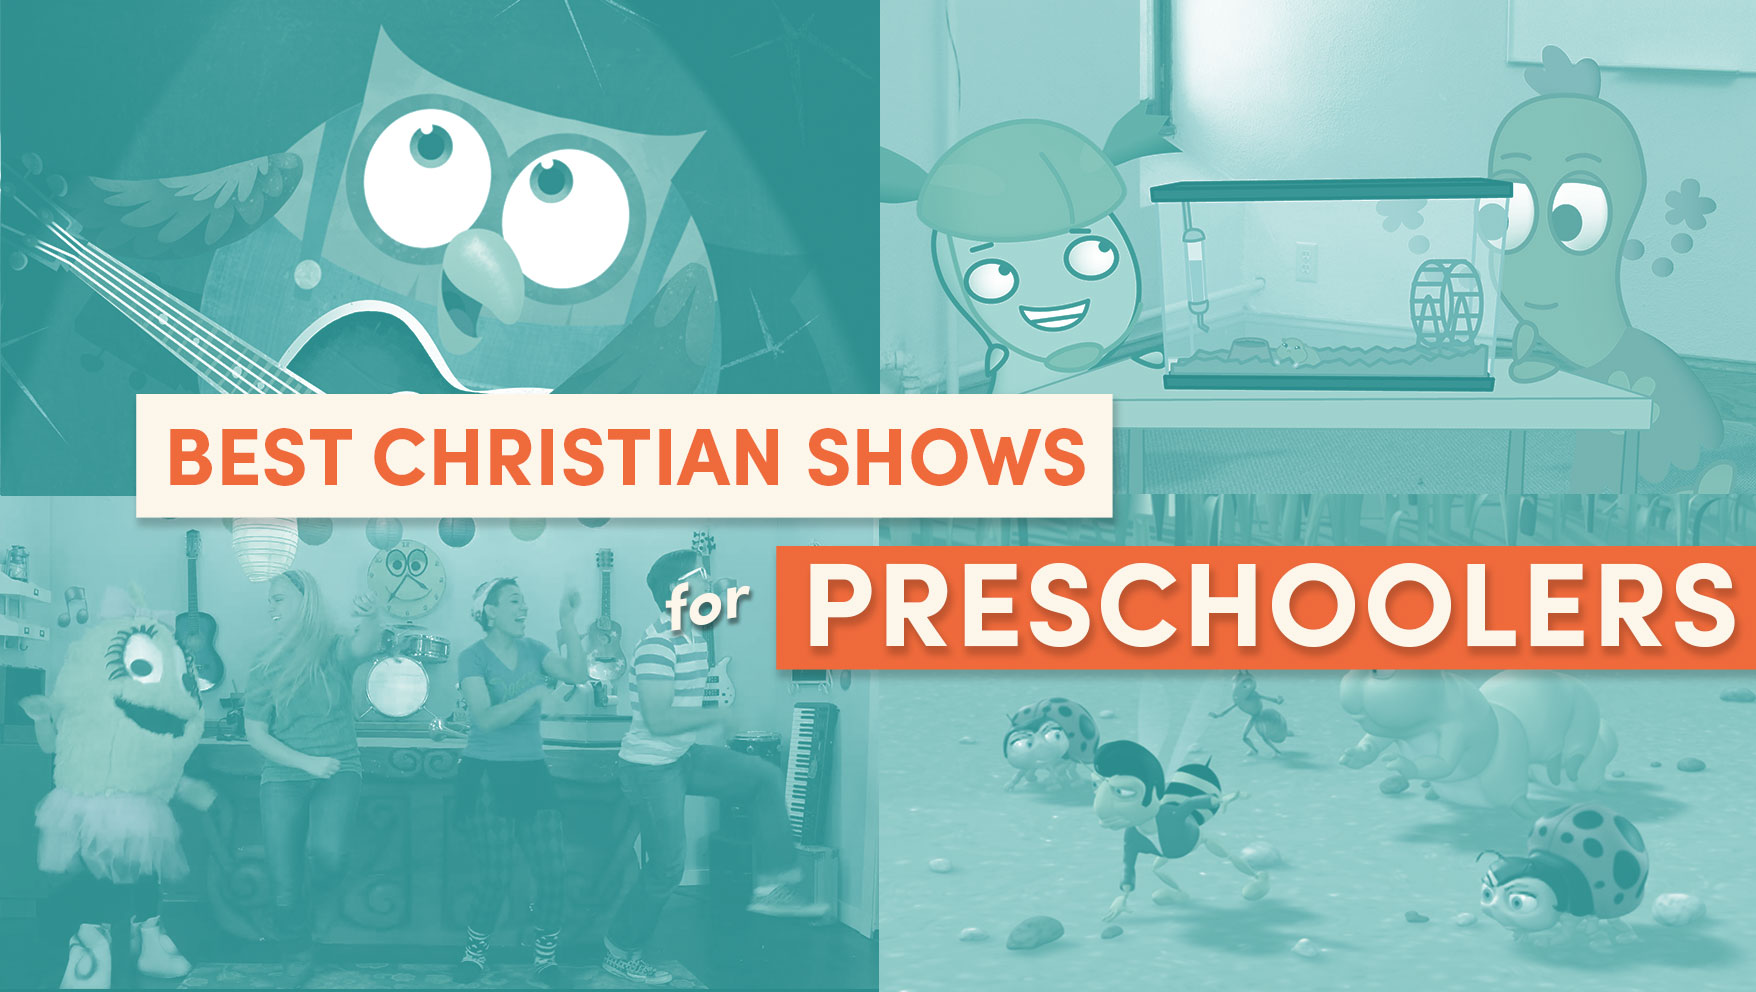 Best Christian Shows for Preschoolers